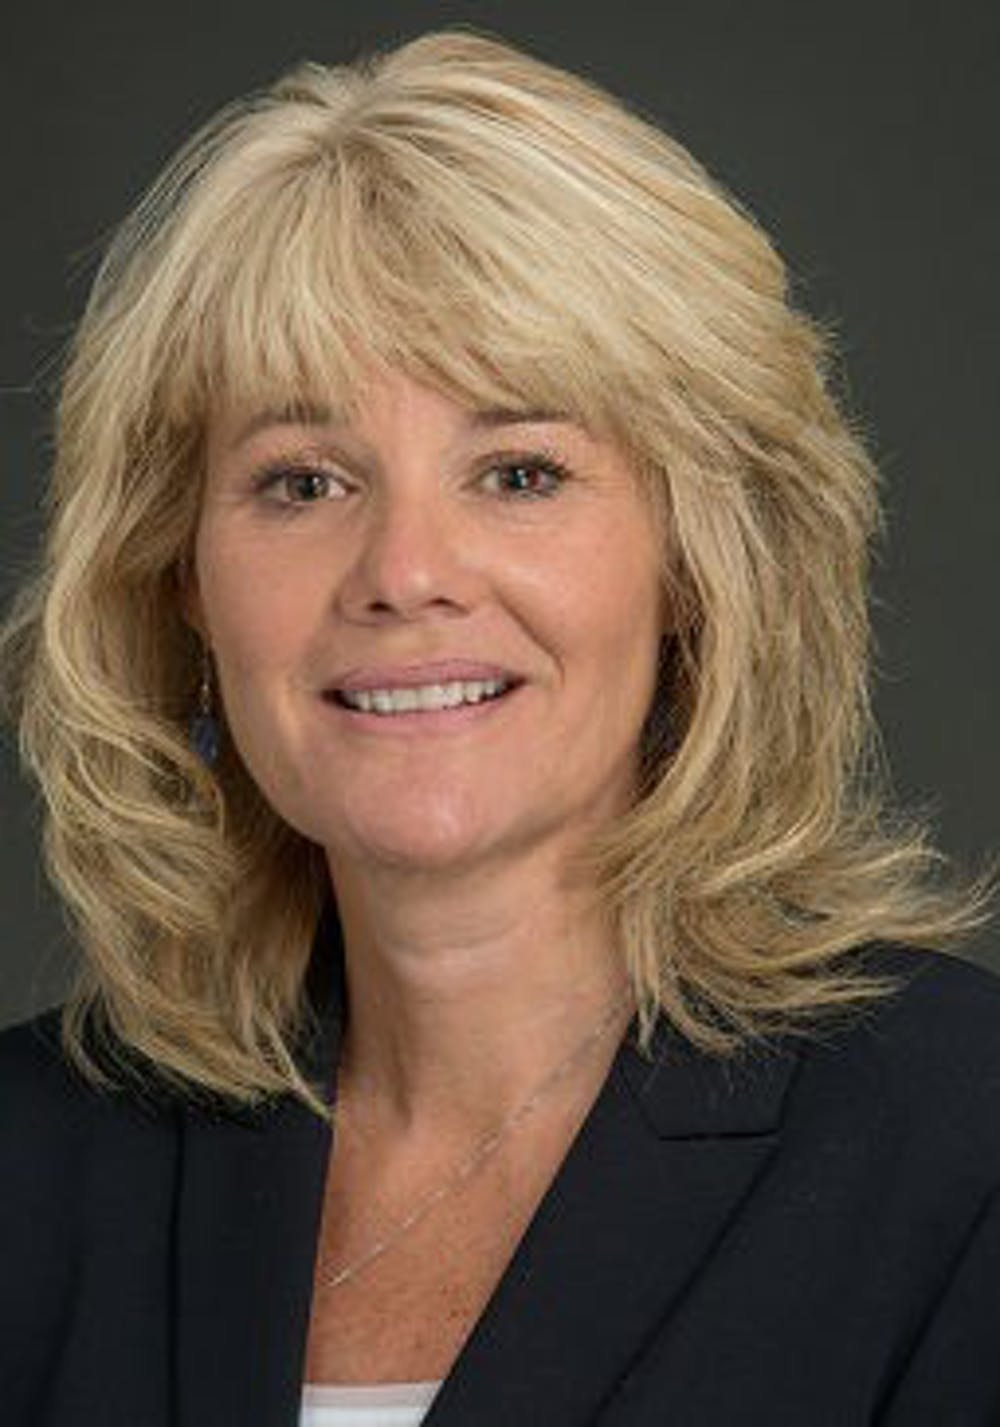 OU announces role transition, retirement plans of Chief Financial Officer Deb Shaffer